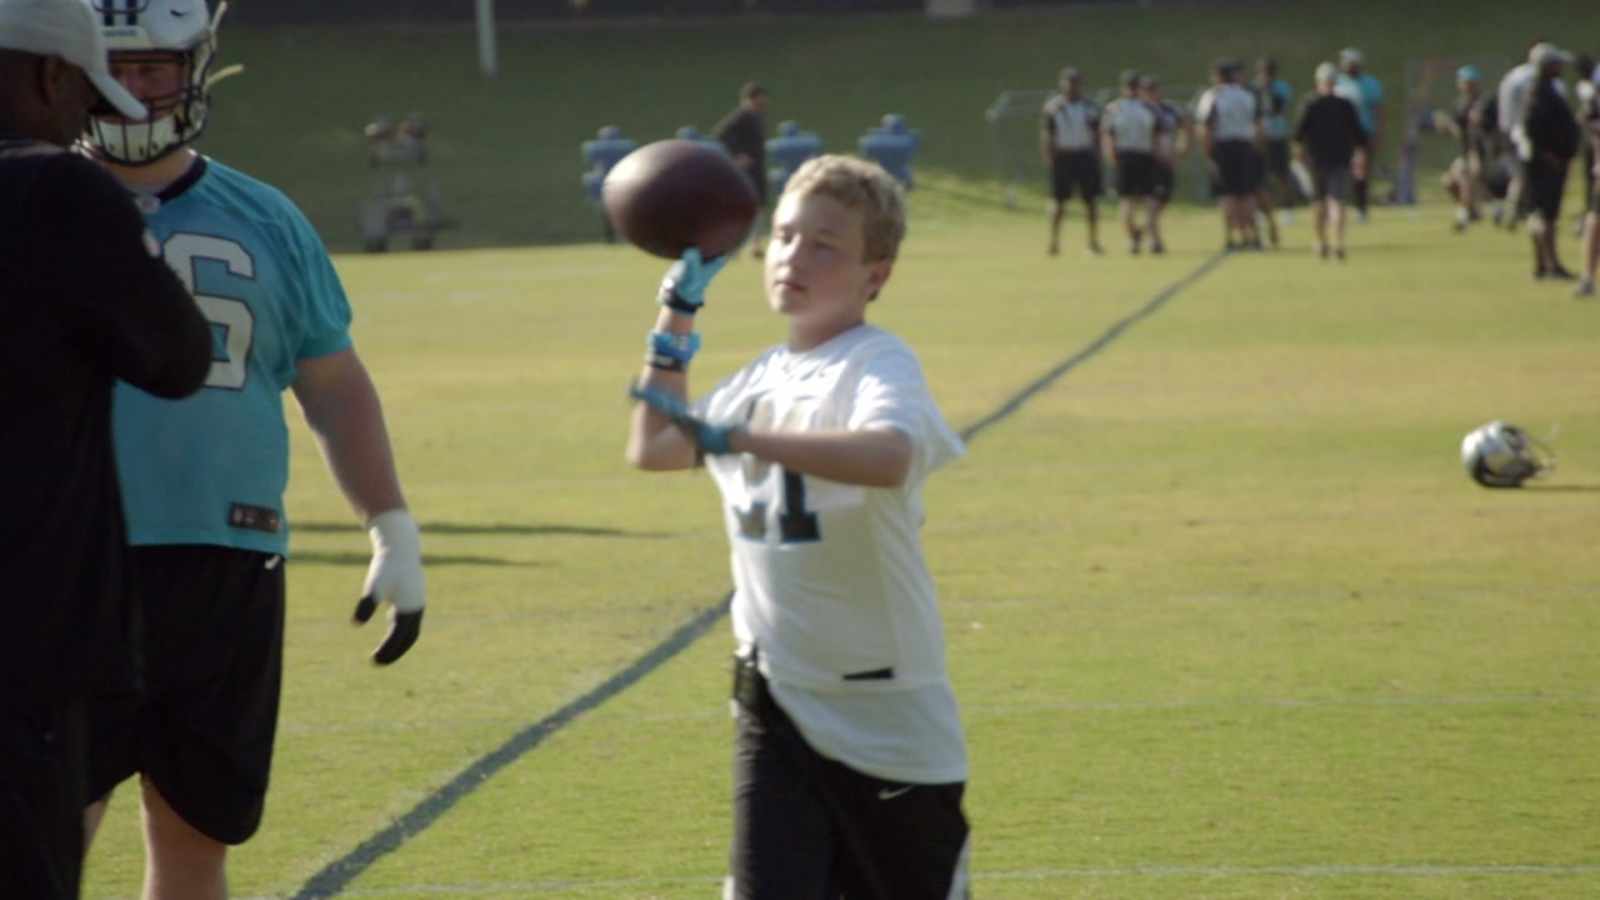 Panthers invite boy battling cancer to practice and gain 'extra juice'